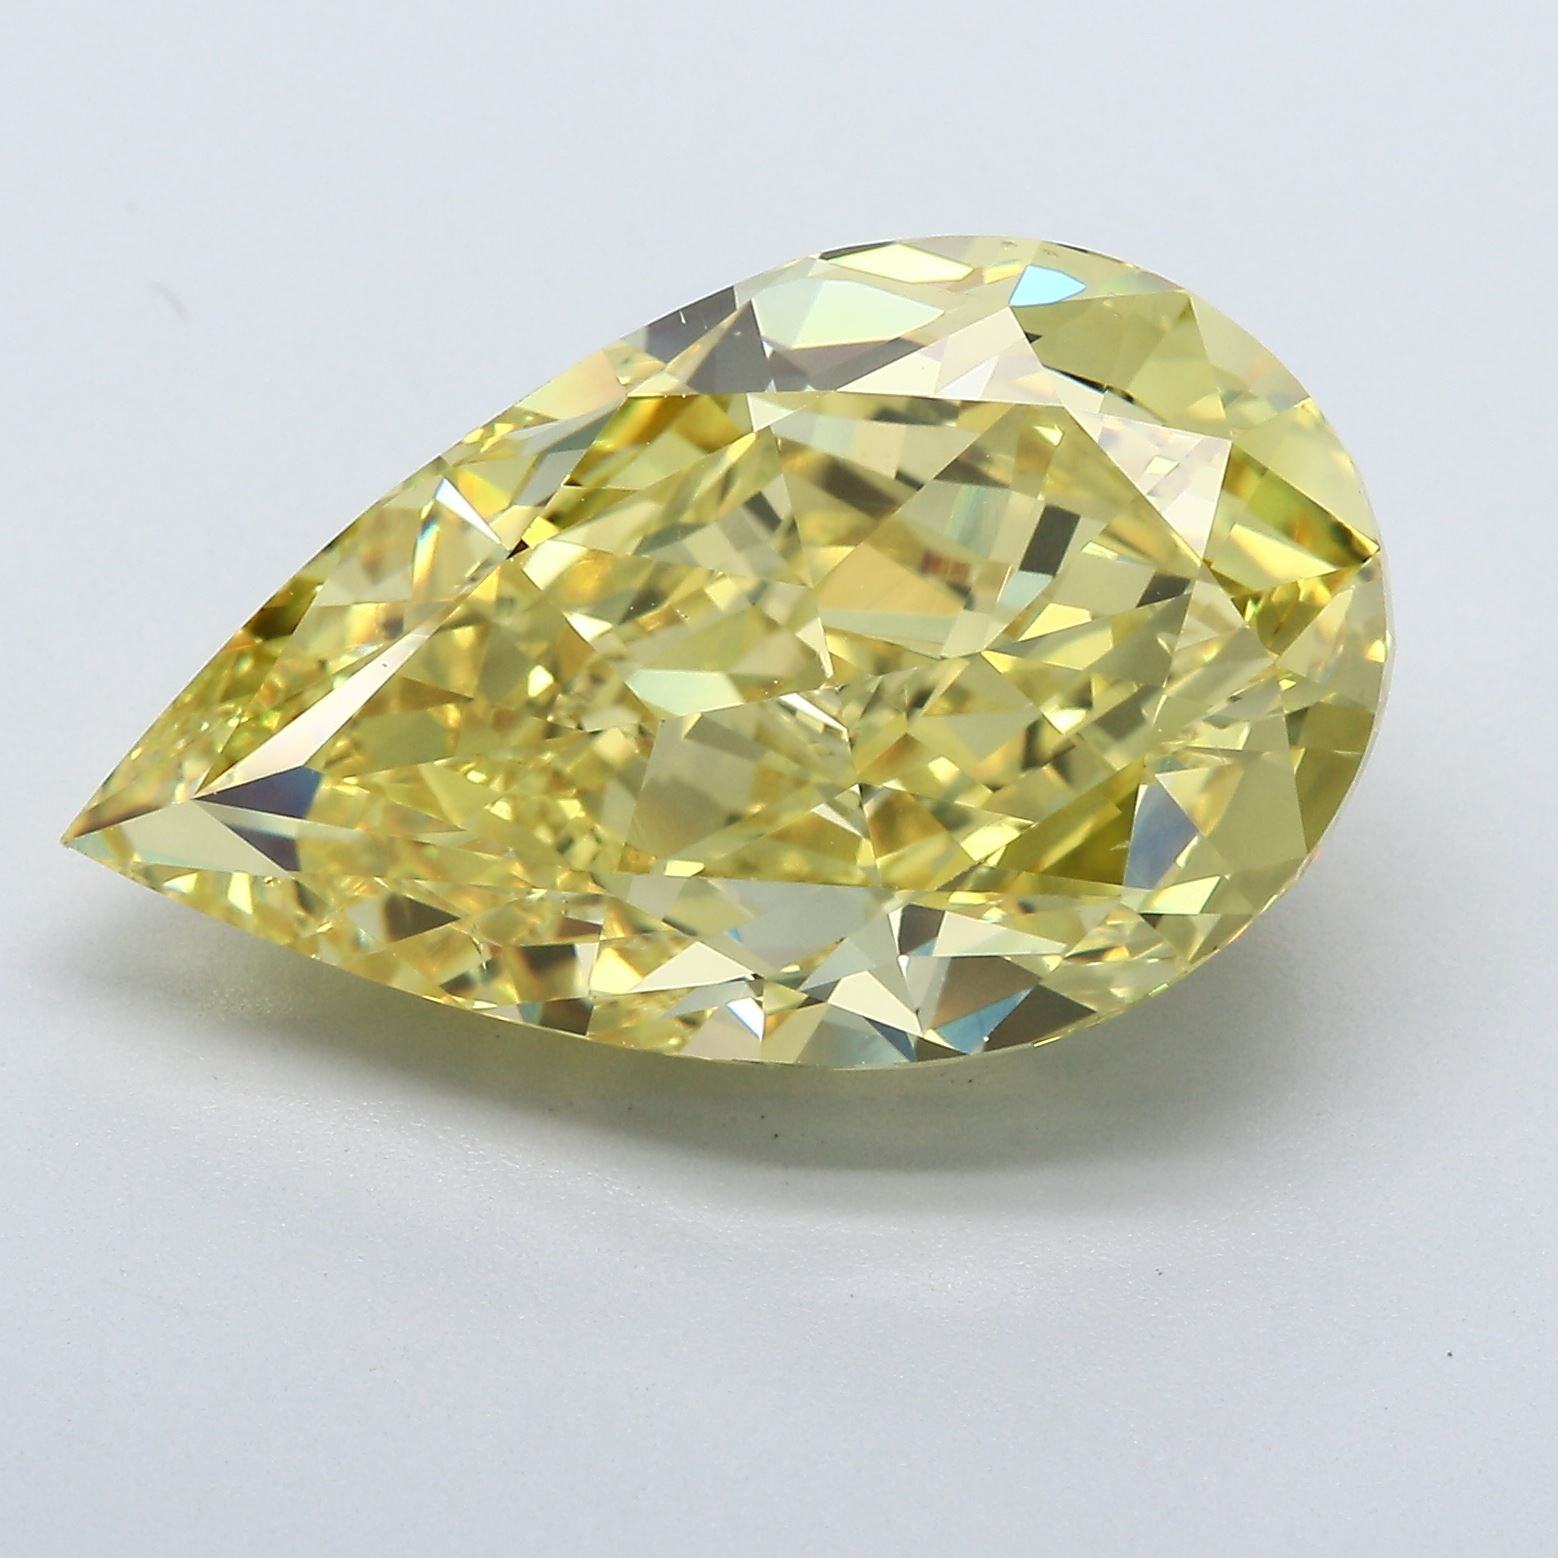 13.04-Carat Vivid Yellow Pear Shaped Diamond by Blue Nile